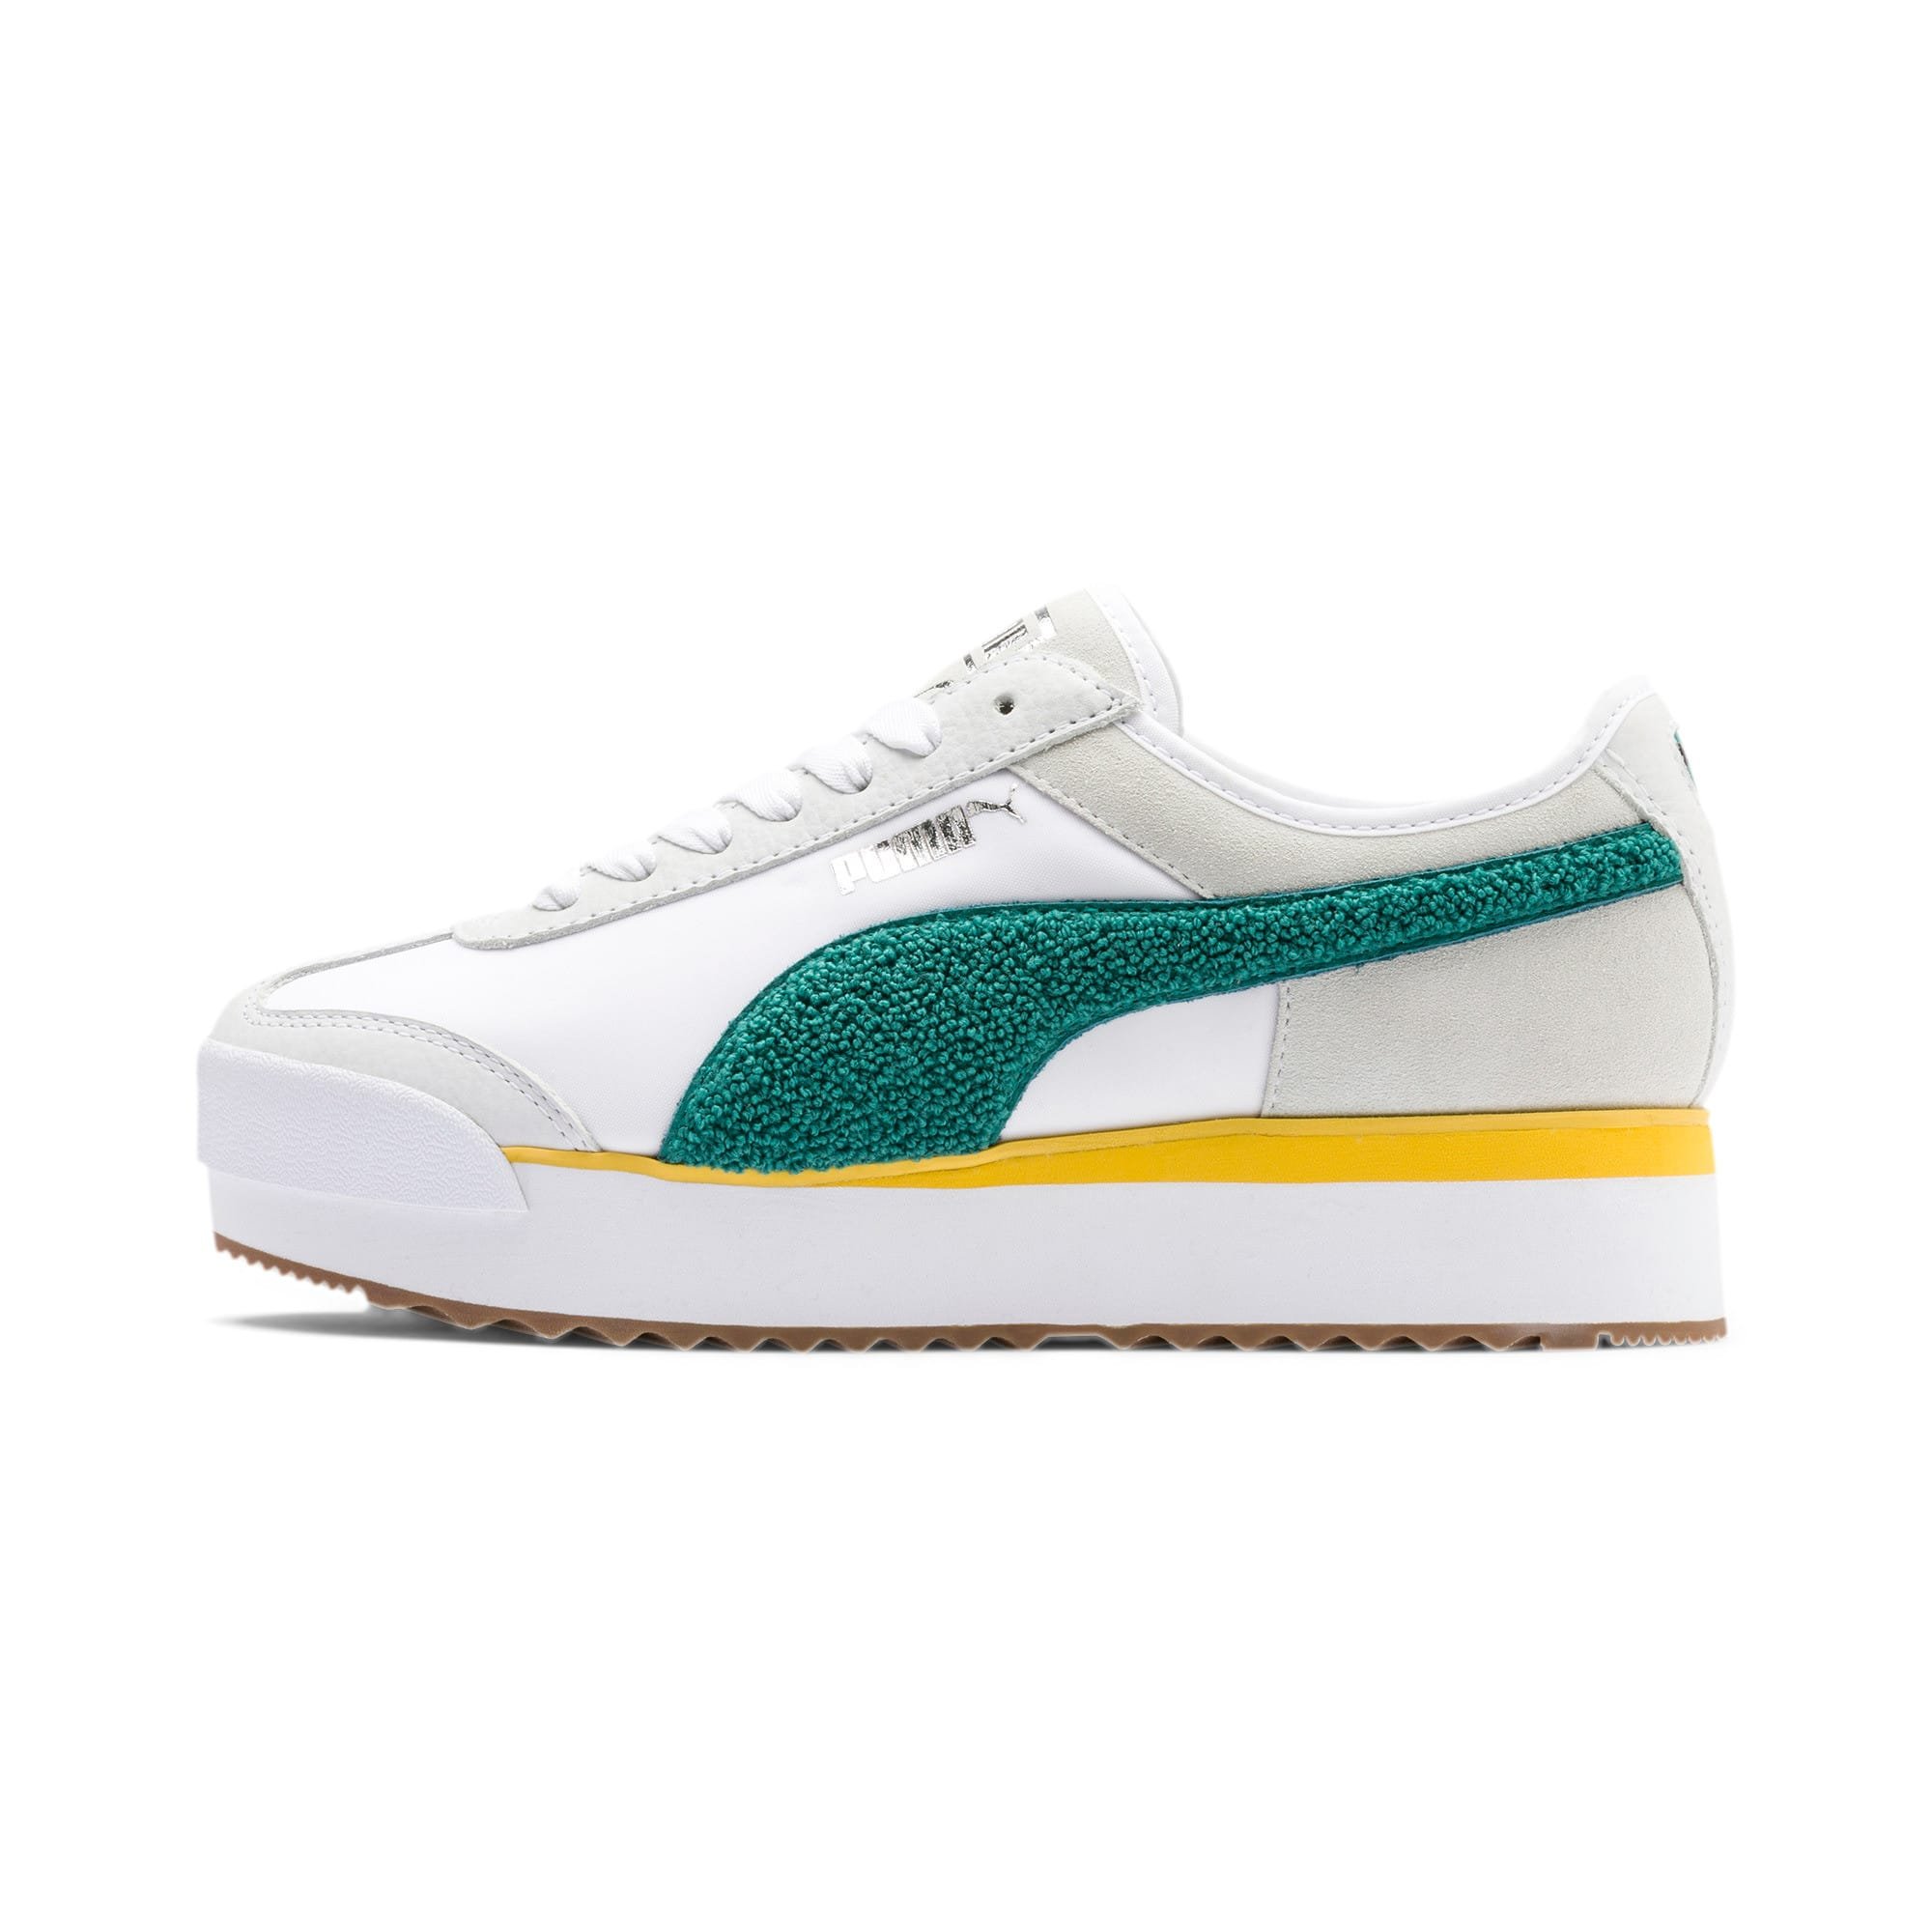 Thumbnail 1 of Roma Amor Heritage Women's Sneakers, Puma White-Teal Green, medium